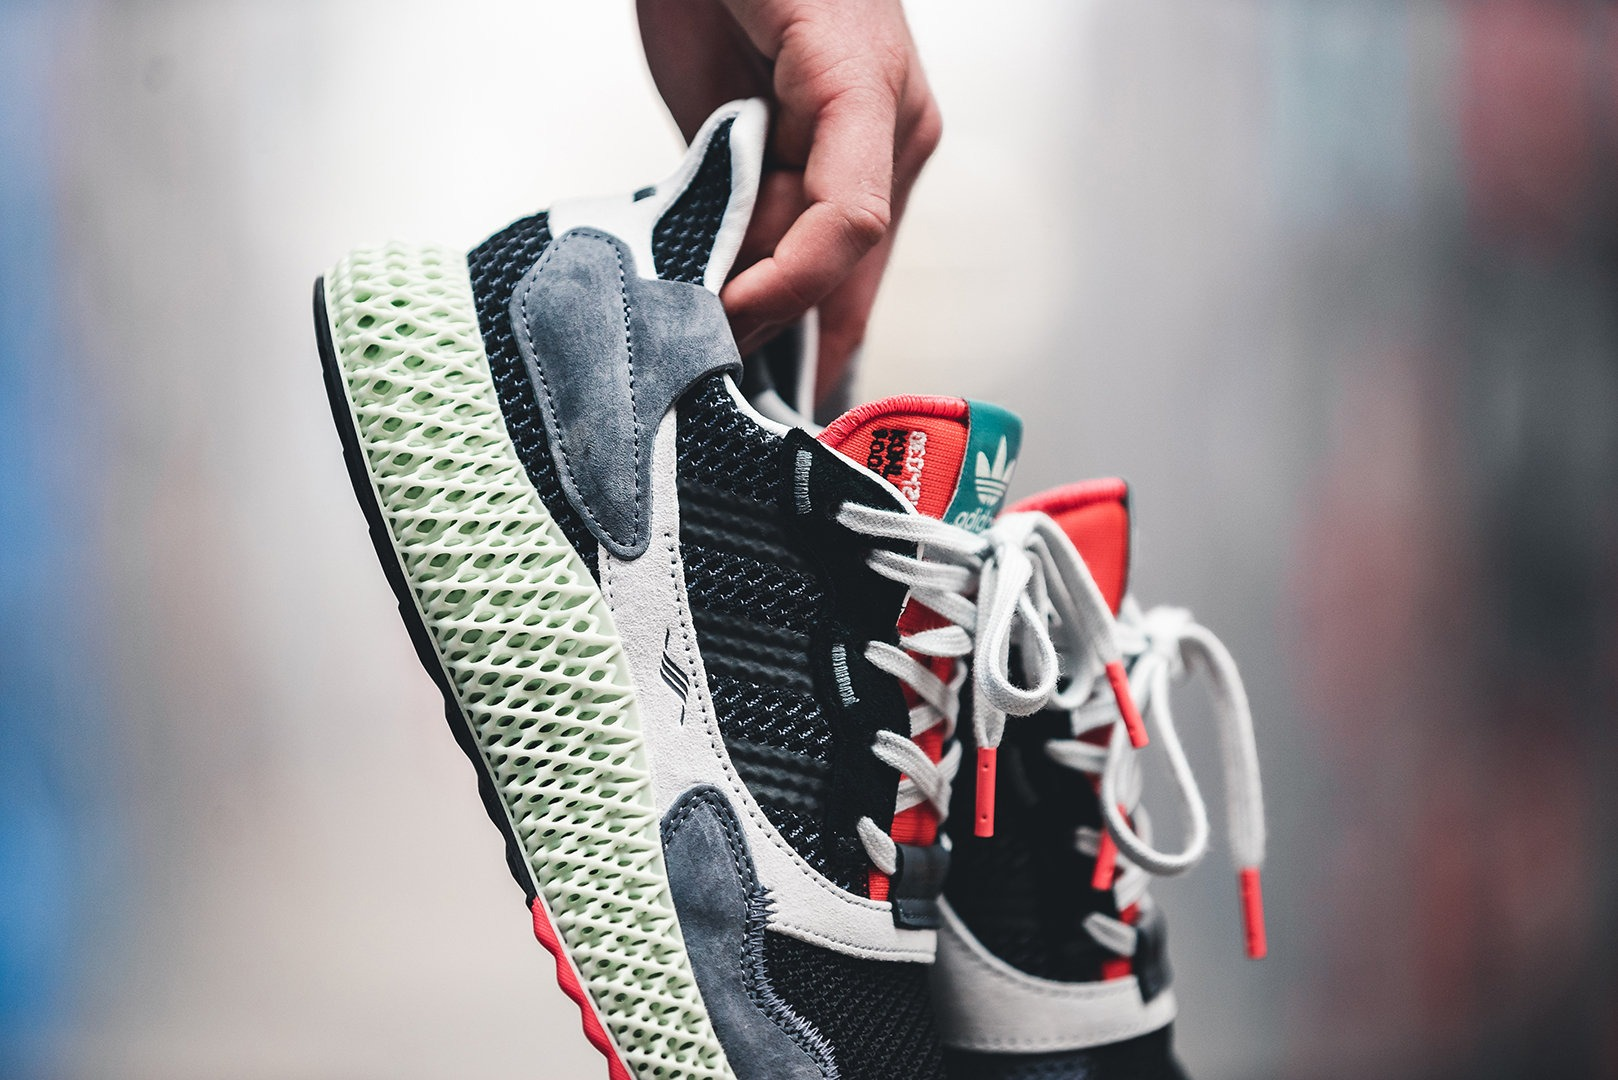 info for e5336 49233 In February, adidas Consortium debuted the ZX 4000 4D. Then in April, adidas  pulled out the Carbon colorway of the sneaker.